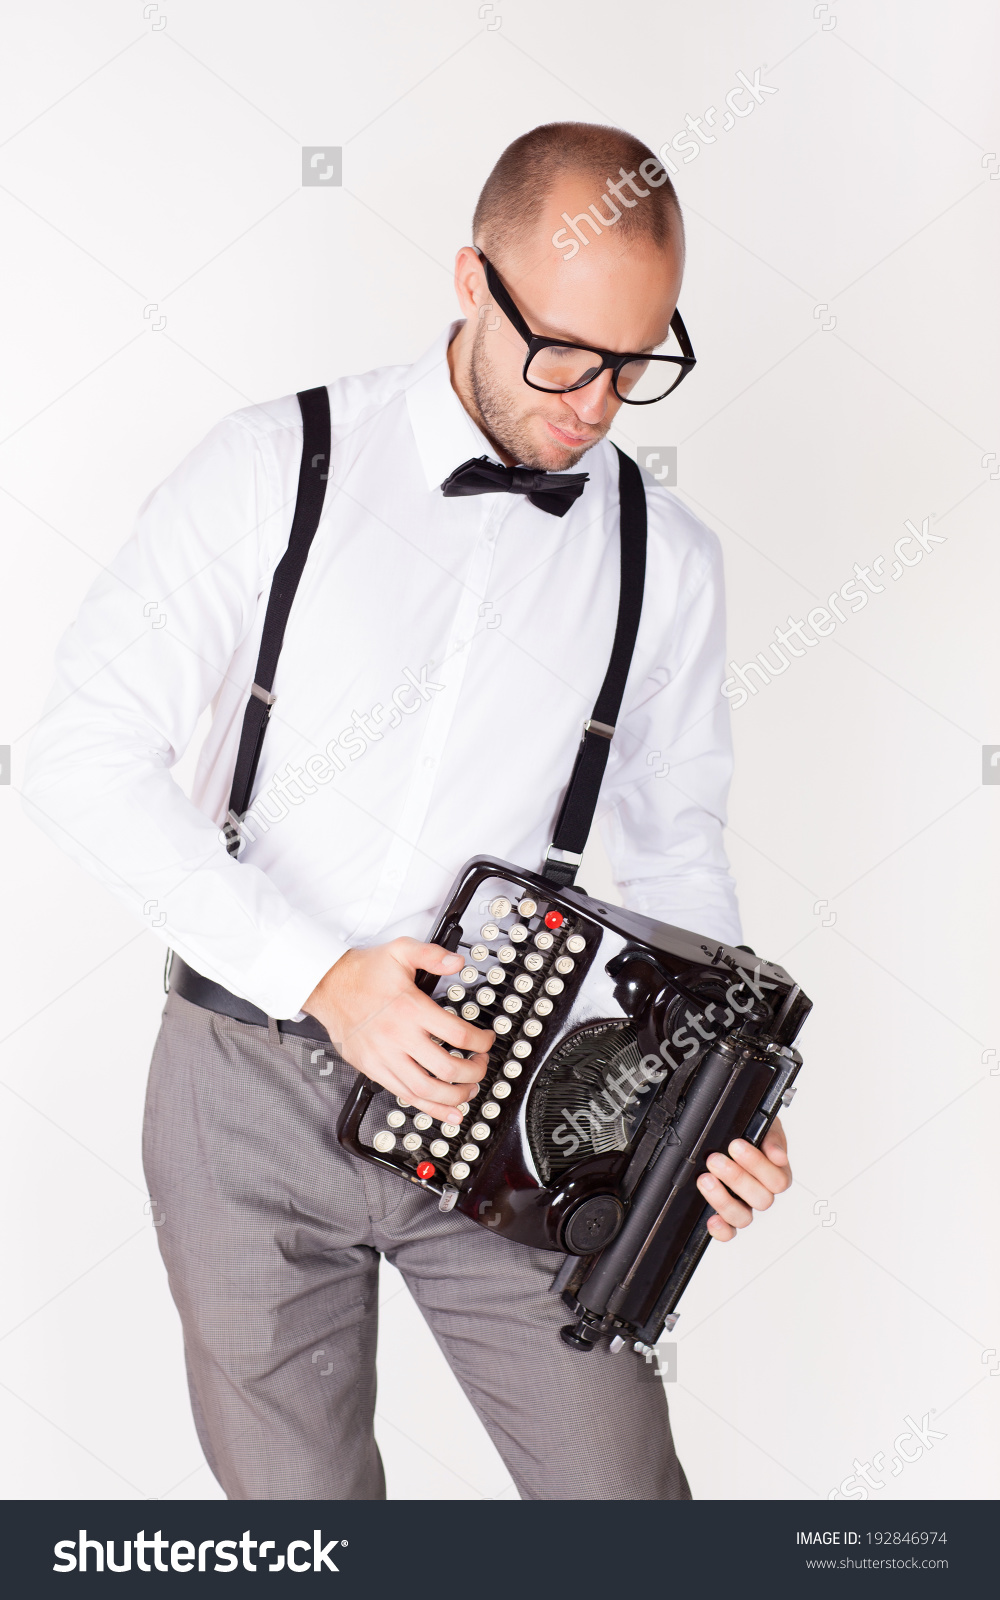 stock-photo-portrait-of-a-young-businessman-with-a-typewriter-192846974